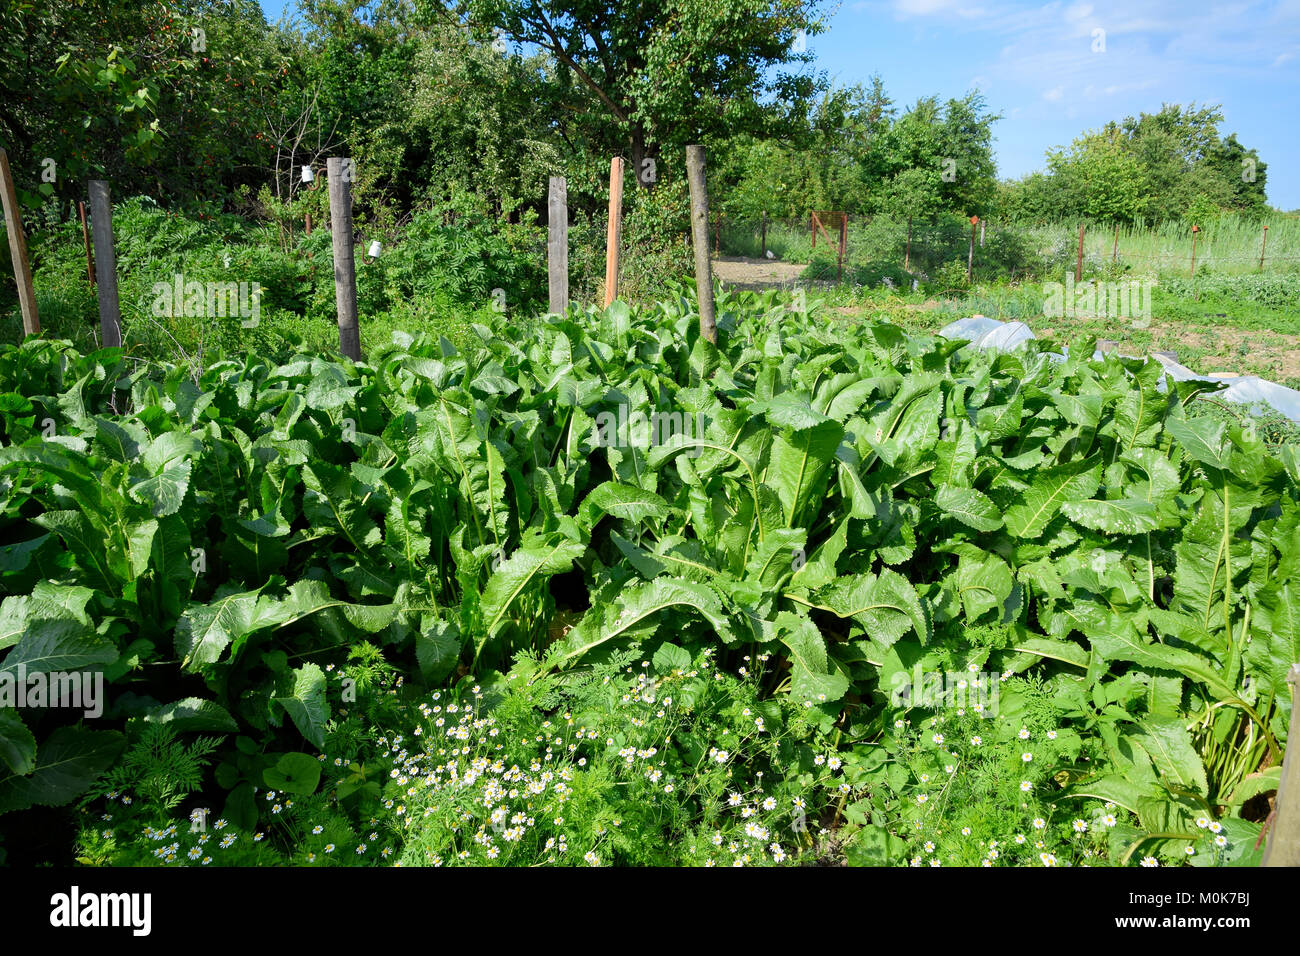 Plant horseradish. Spicy plant in the garden. Horse-radish is common in the garden. - Stock Image